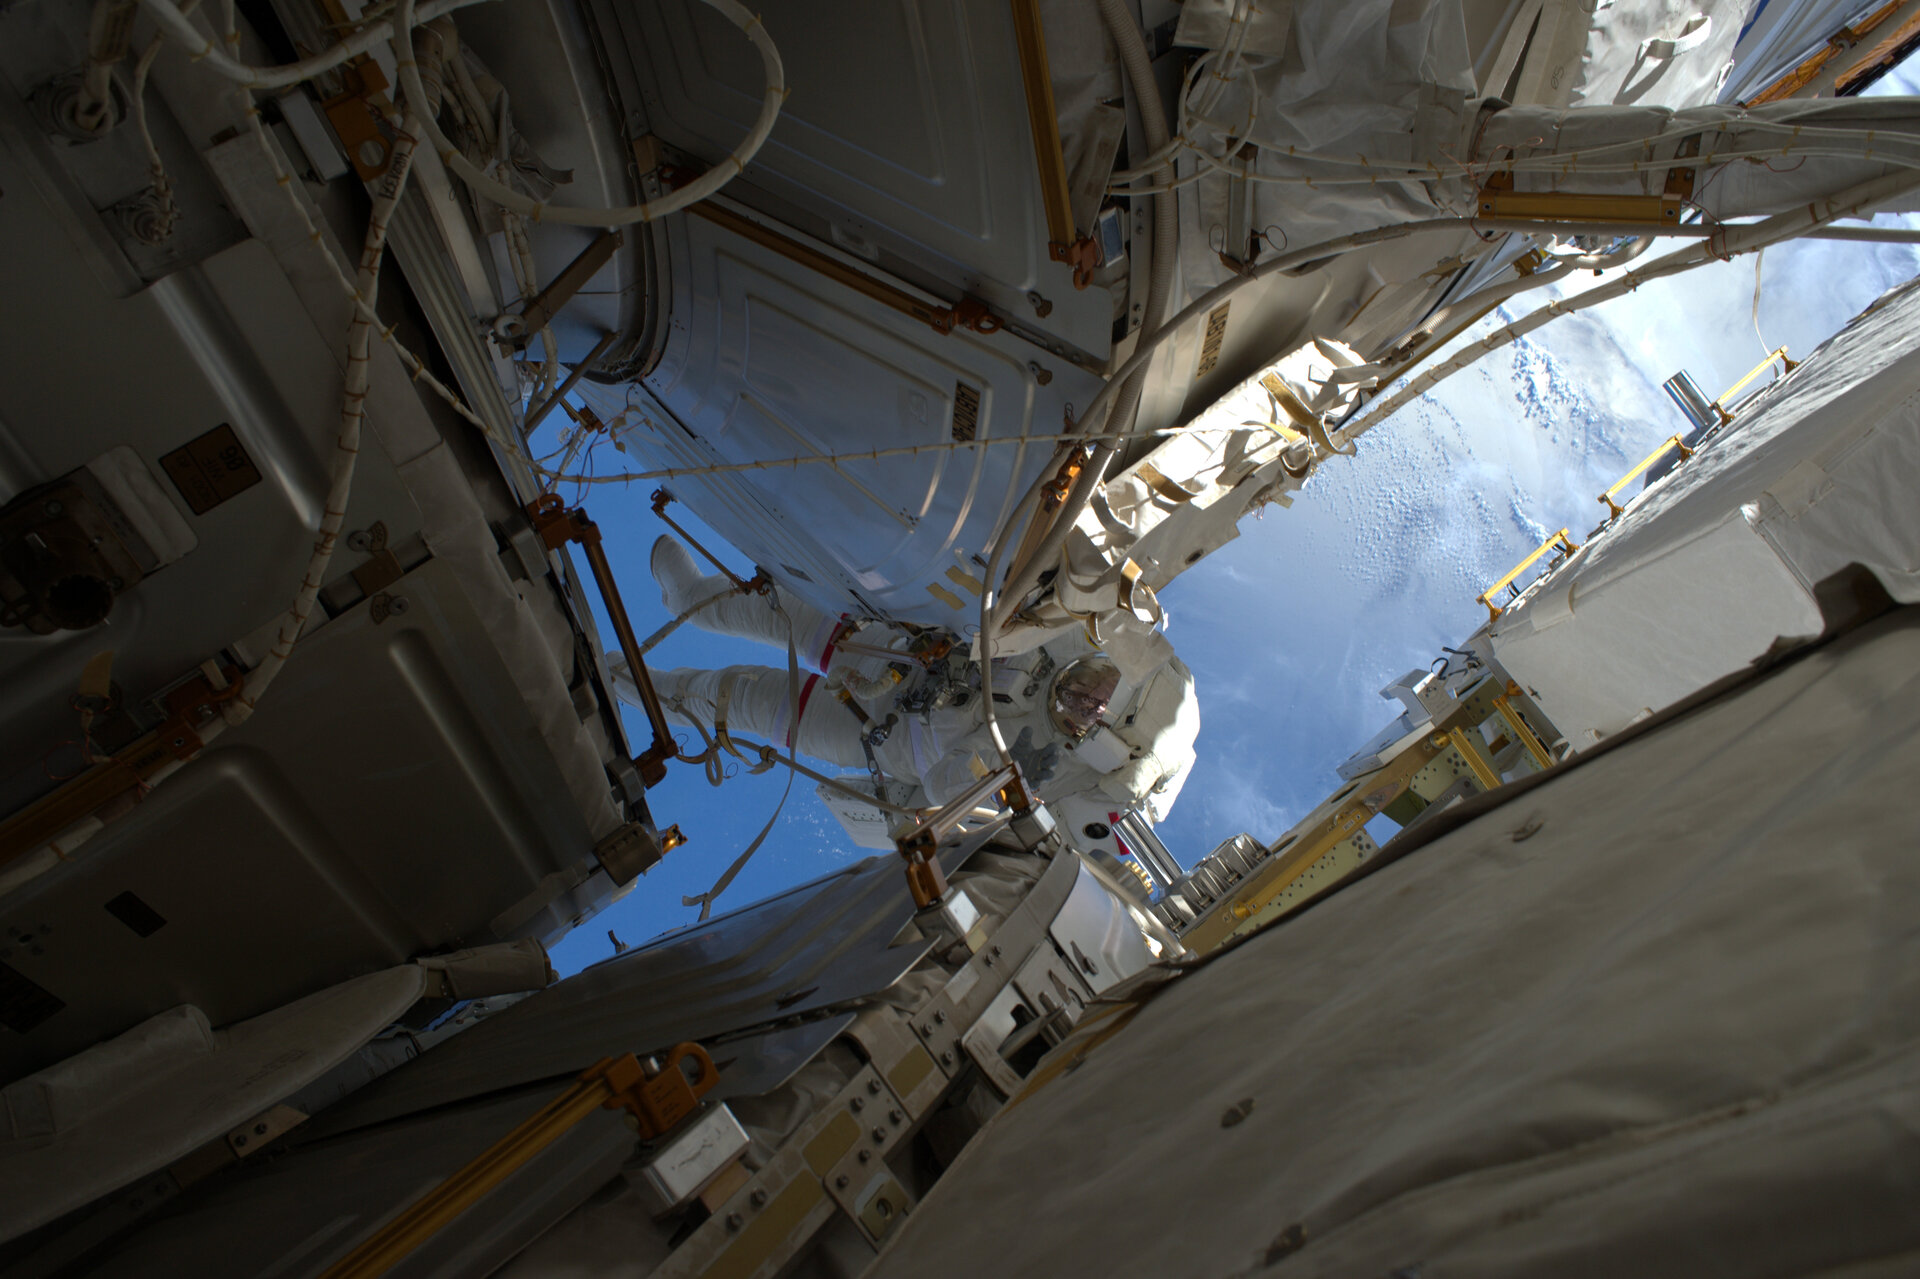 Shane Kimbrough spacewalk